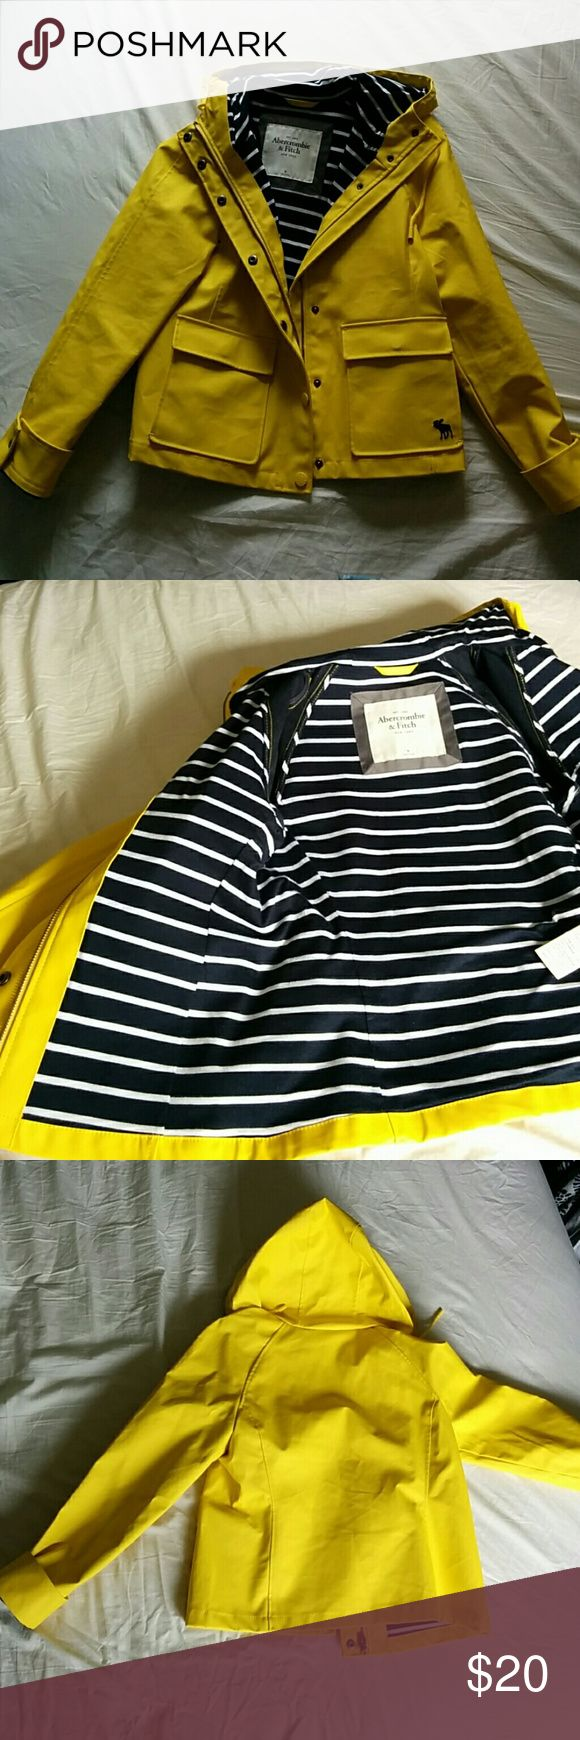 Cute Yellow Rain Coat from Abercrombie and Fitch This is a super cute yellow raincoat from Abercrombie & Fitch. Its insides have blue and white stripes. It has barely been worn and it is super water resistant.   Pet free and smoke free home. Abercrombie & Fitch Jackets & Coats